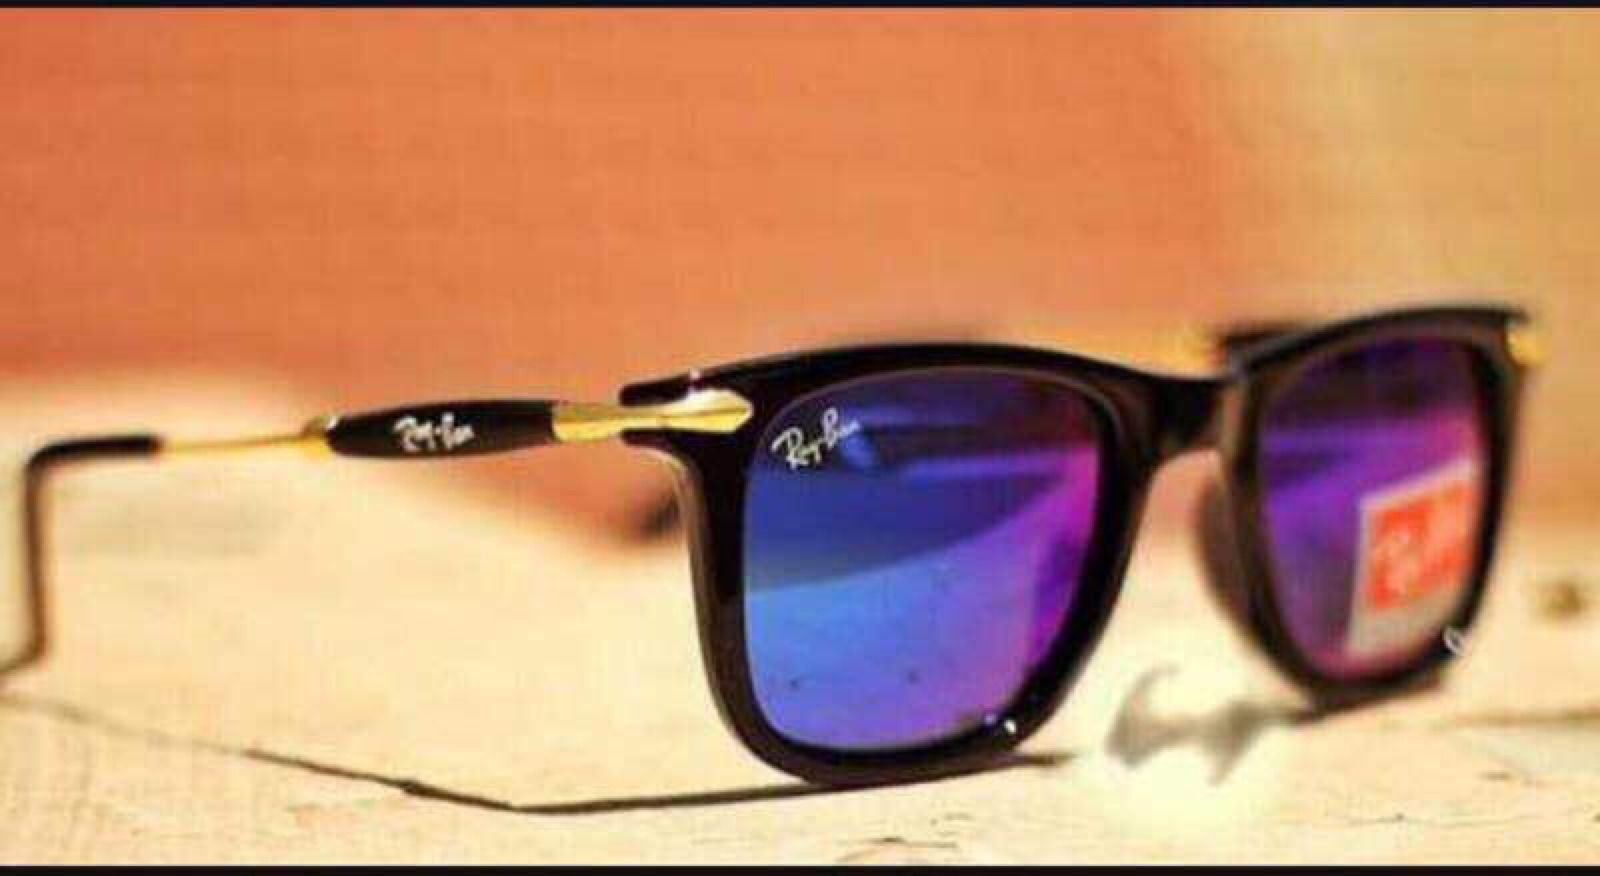 Ray Ban shade  Rubber stick  7a quality  *Don't compare with market quality* #formoredetailspleasewhatsupat919643960110